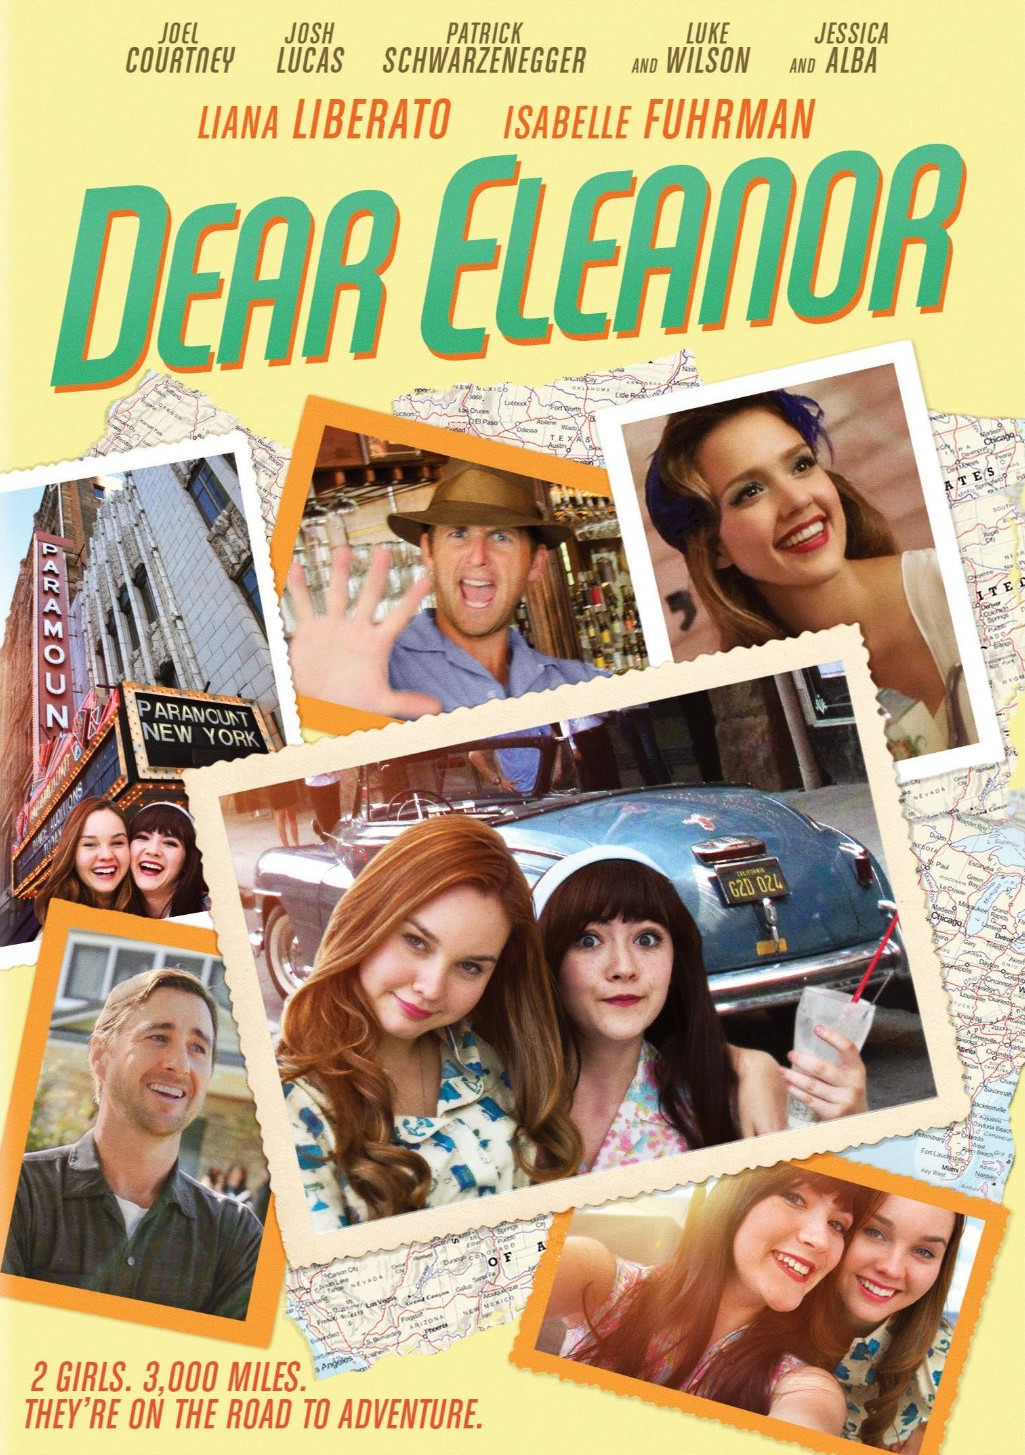 Telecharger dear eleanor for Chambre 13 film marocain telecharger